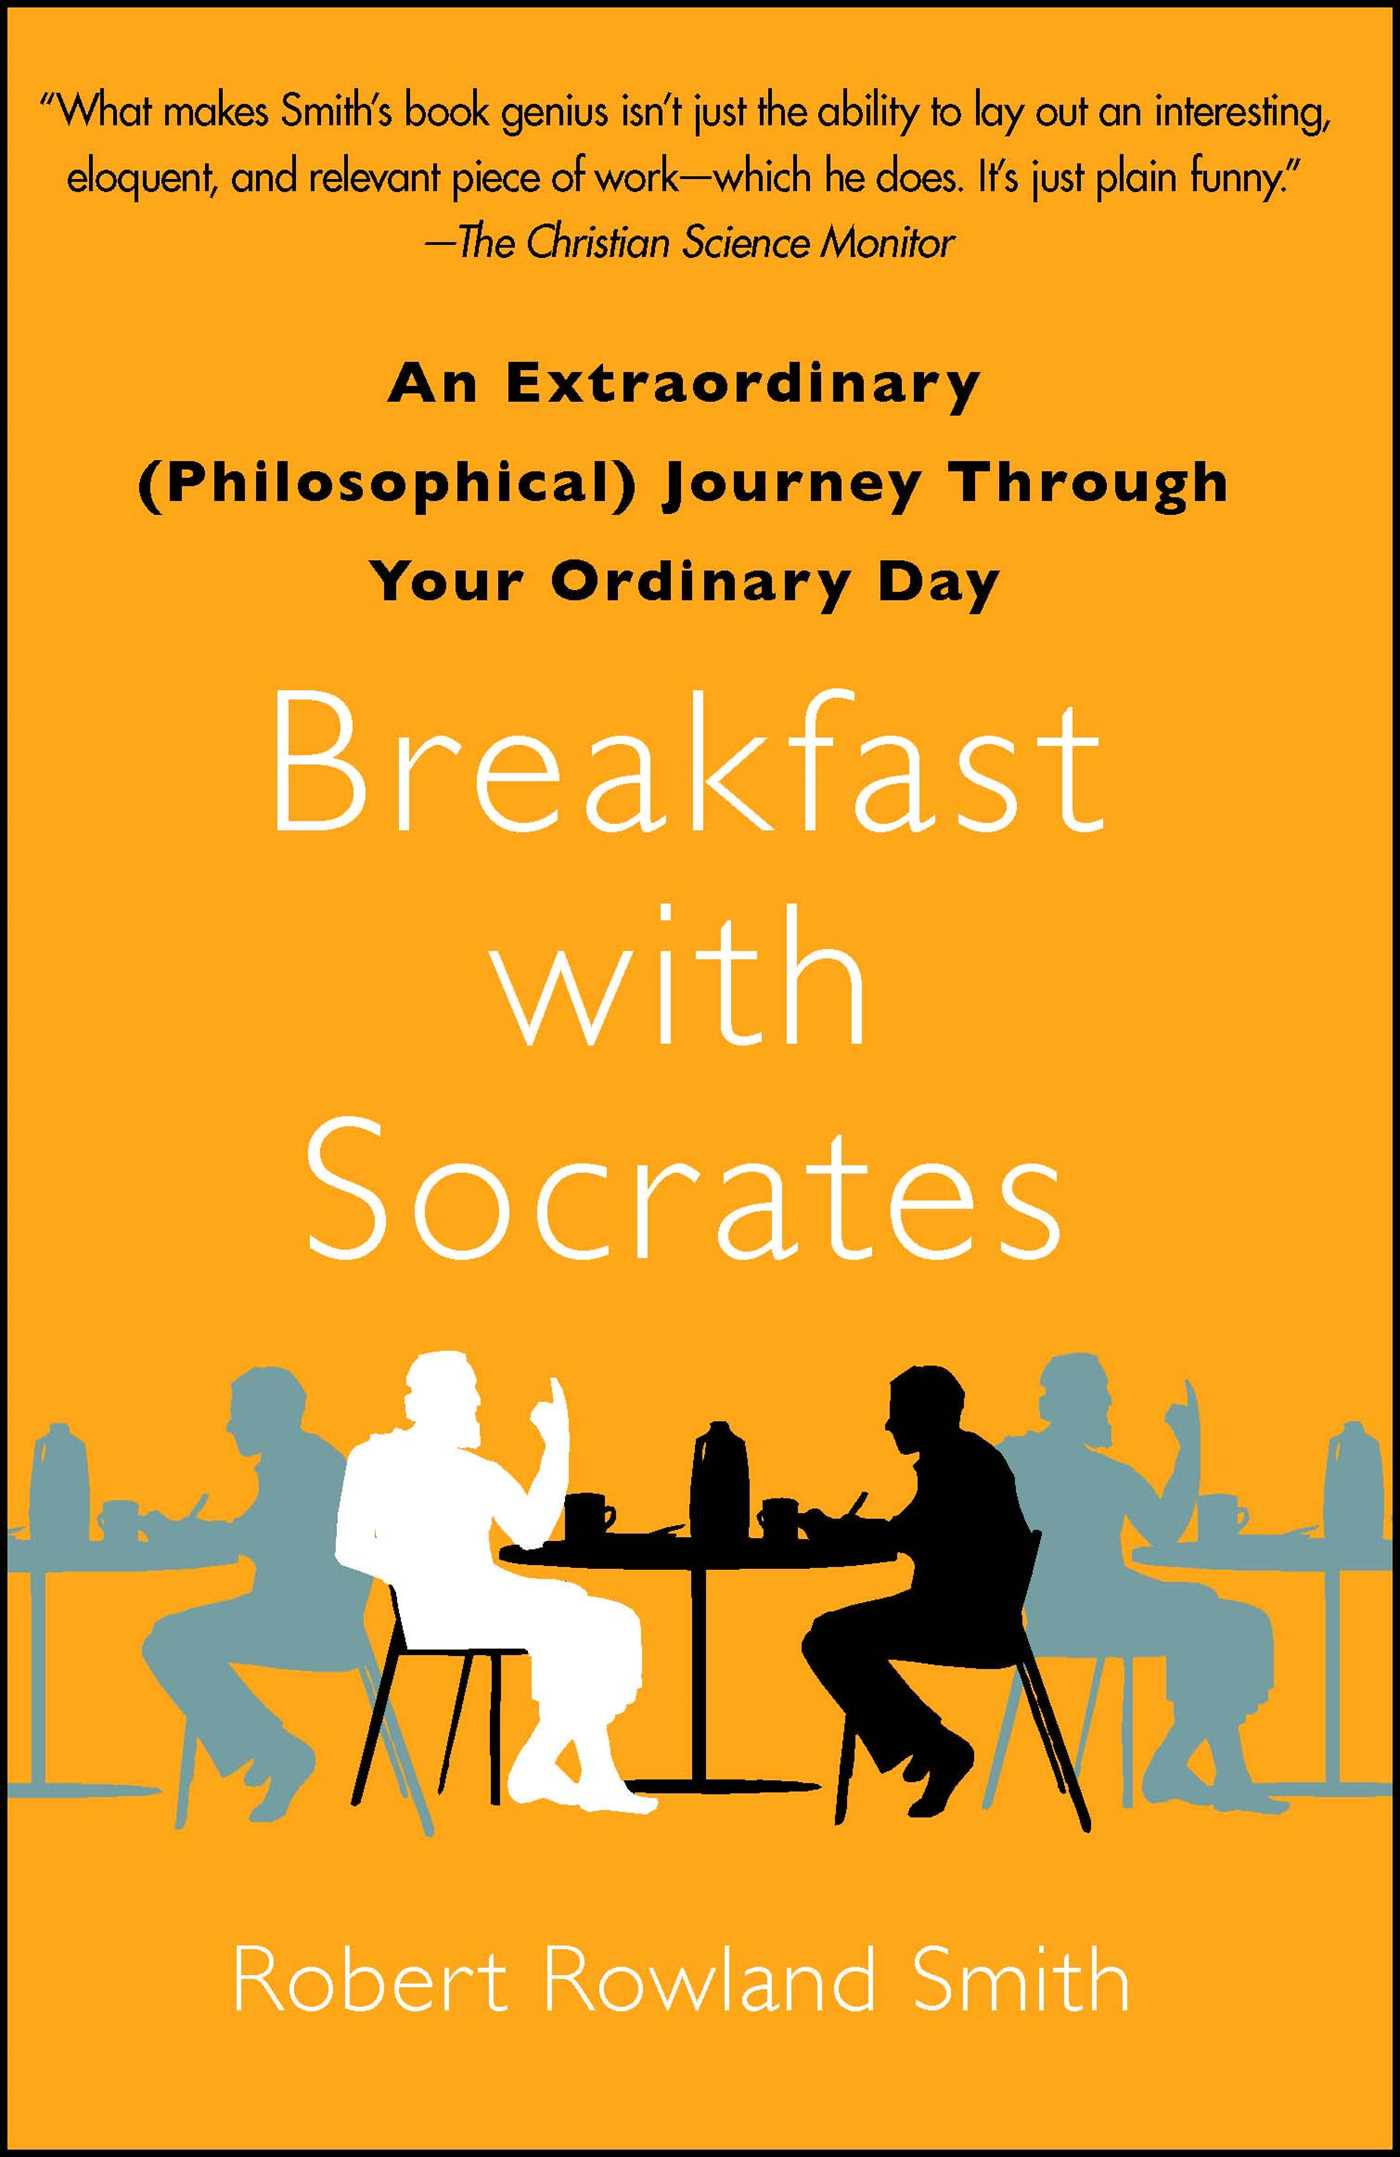 Breakfast-with-socrates-9781439171882_hr